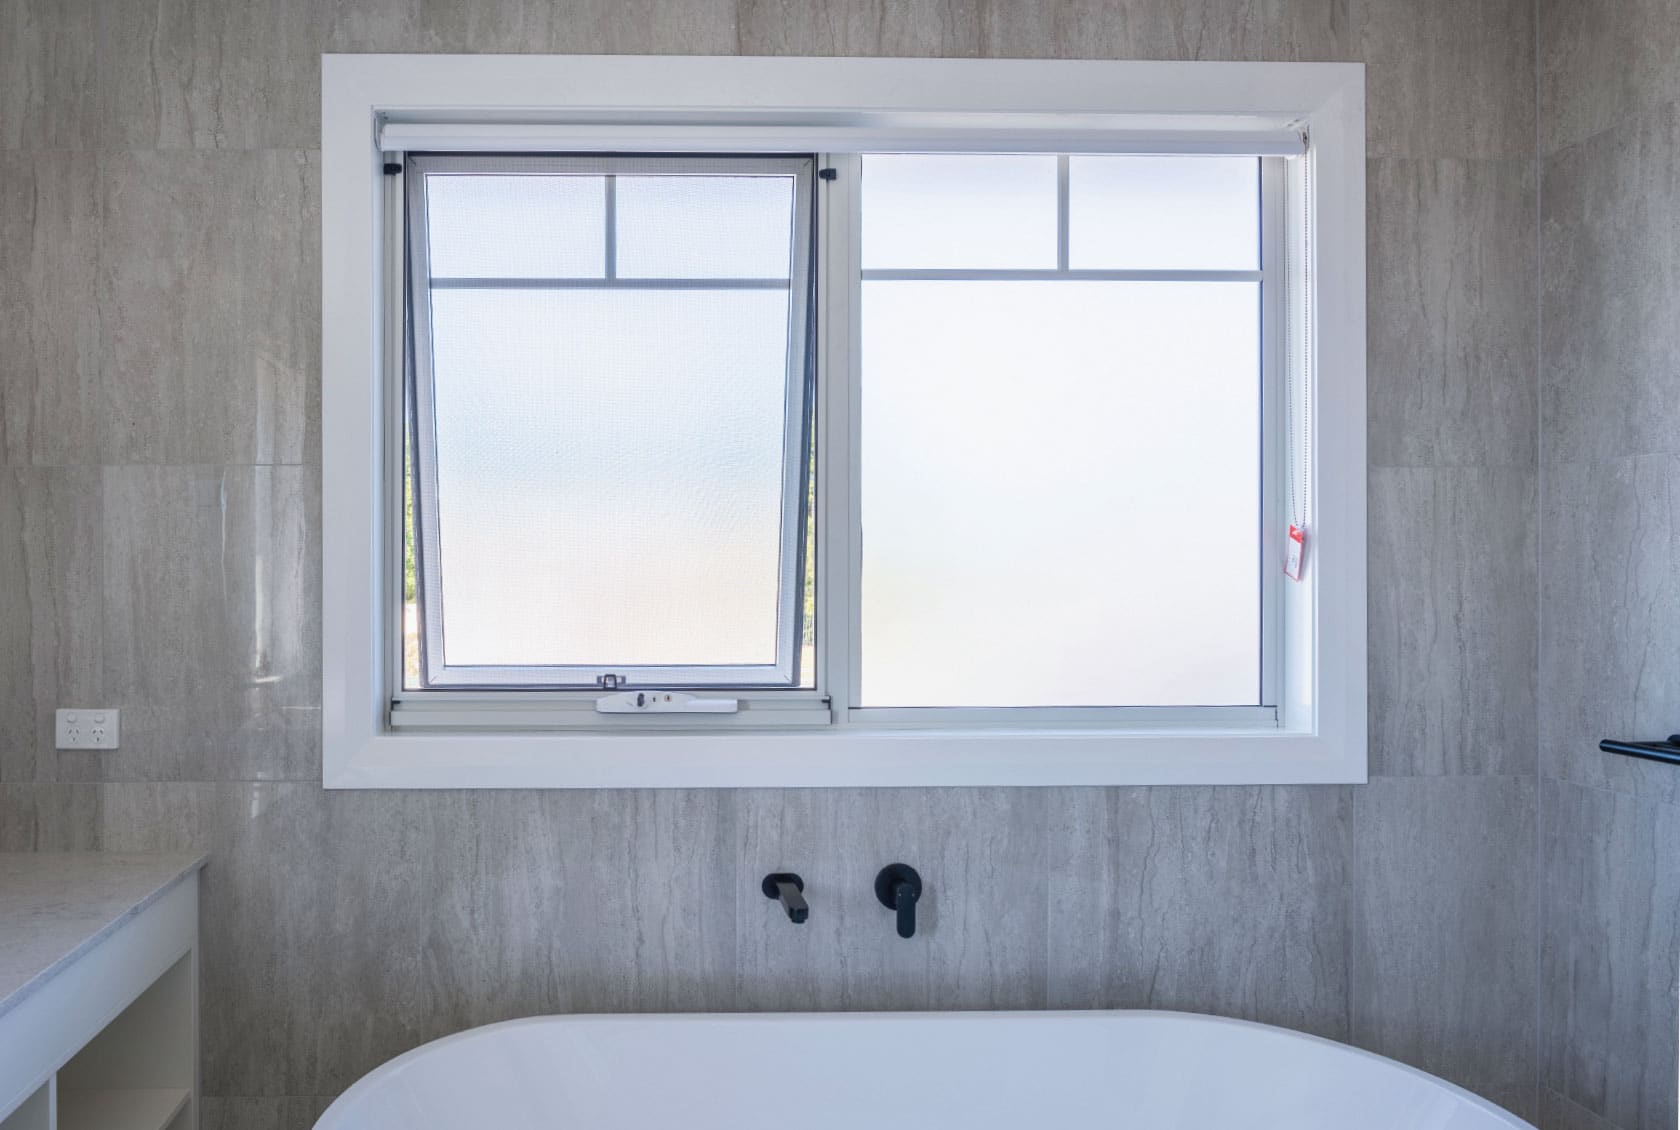 White Awning Window in a bathroom